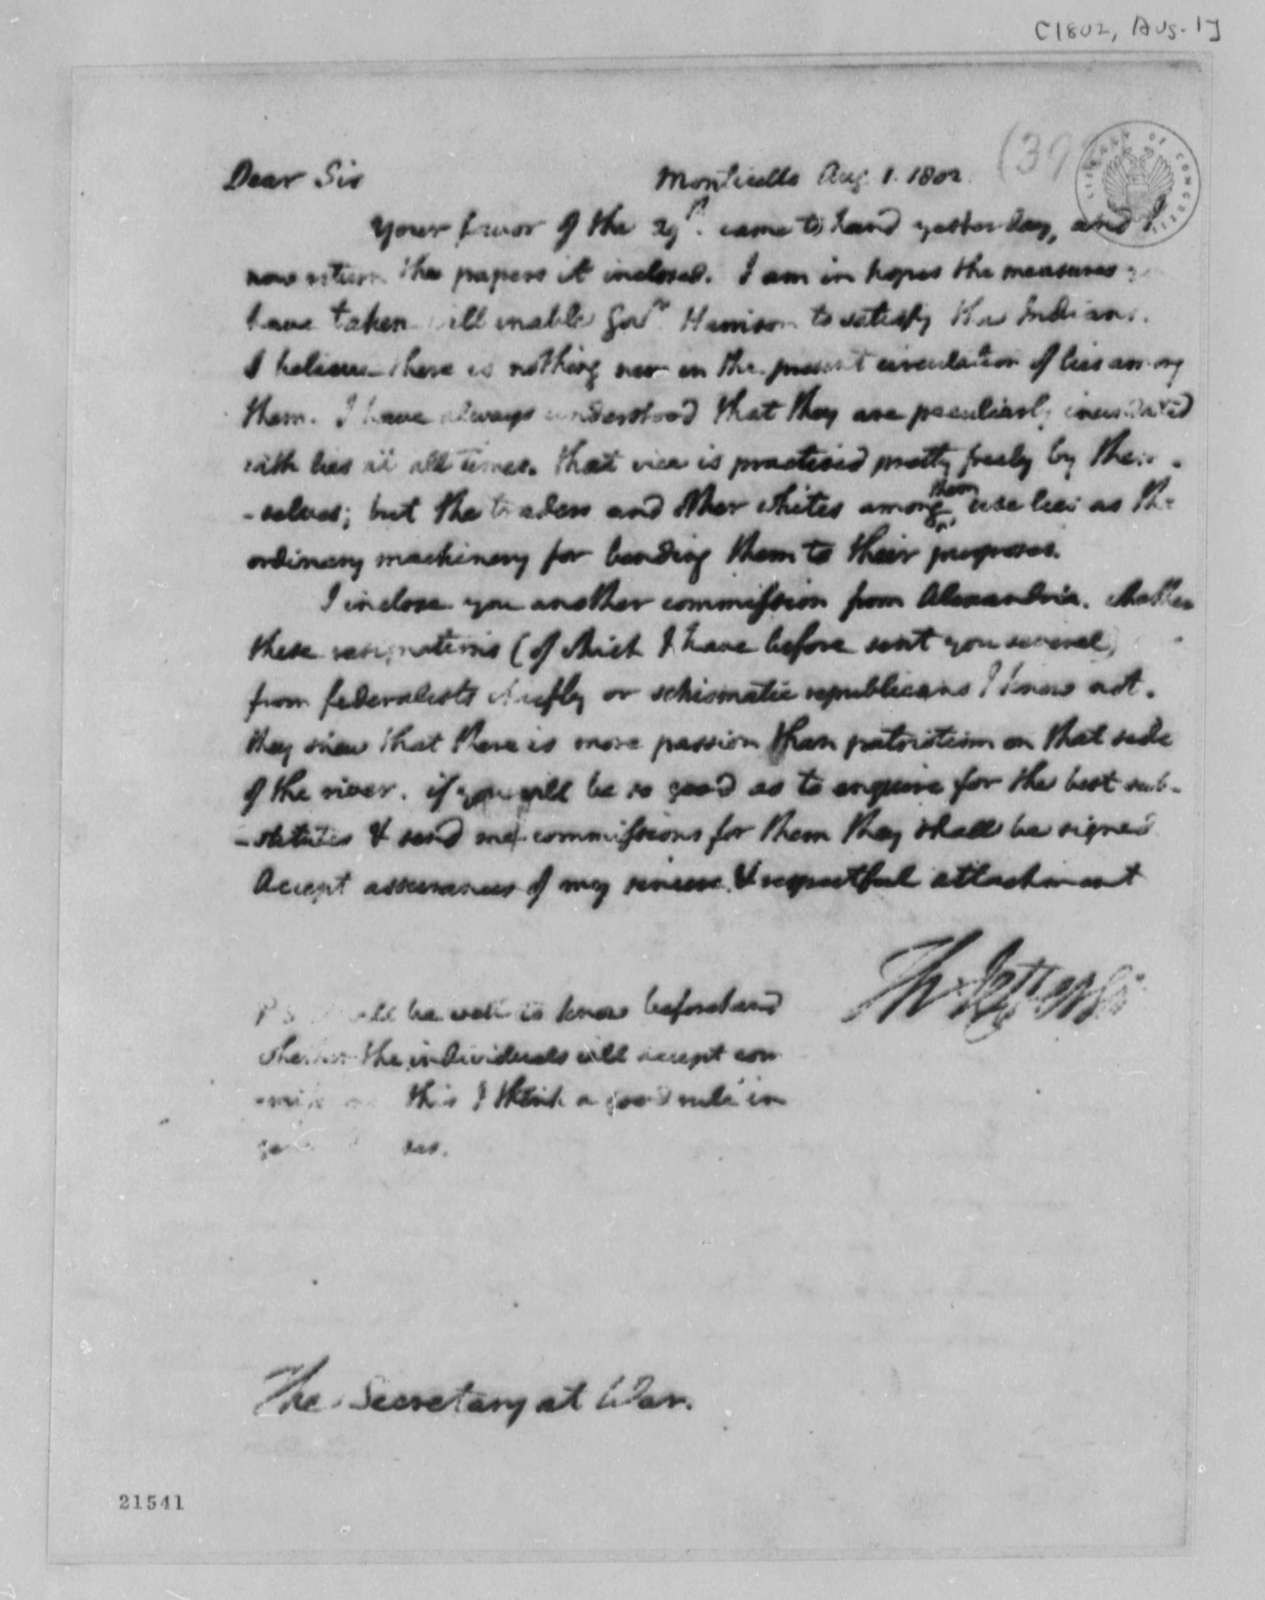 Thomas Jefferson to Henry Dearborn, August 1, 1802